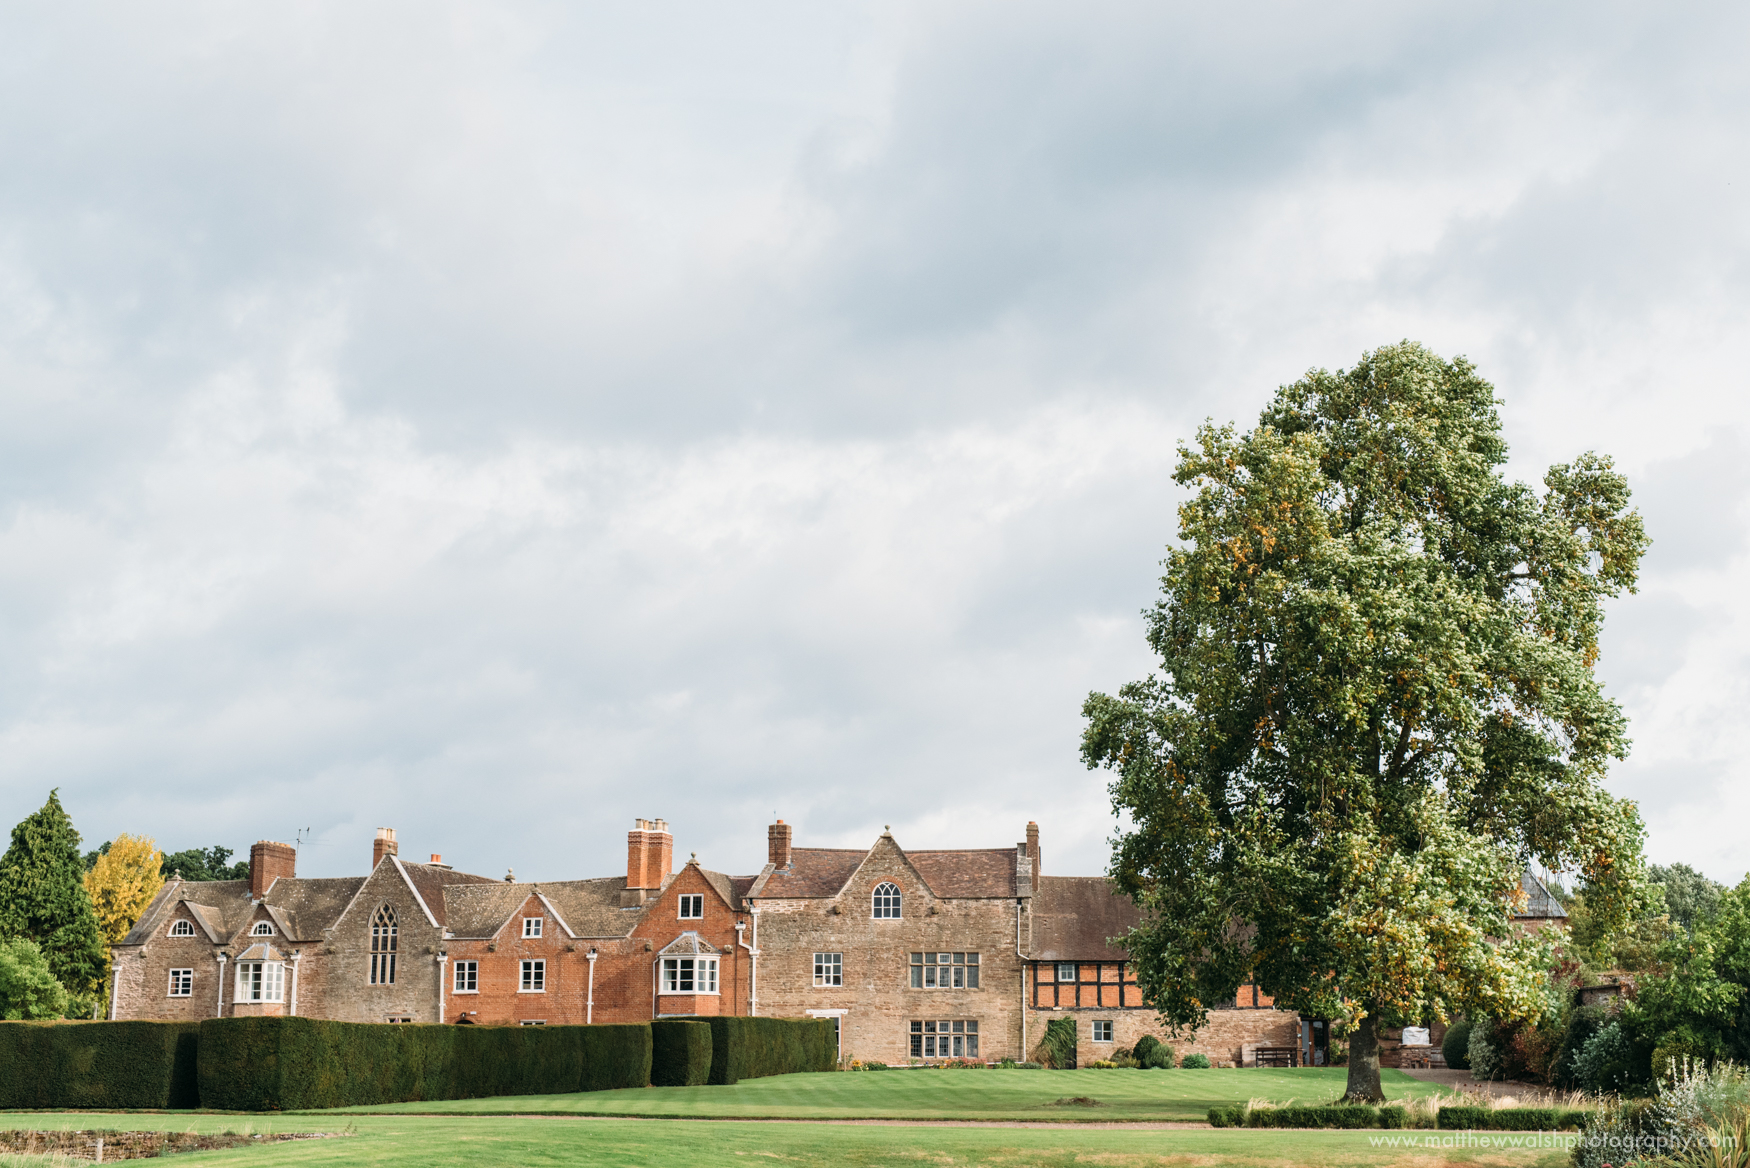 A landscape view of Broadfield Court to add context to the set